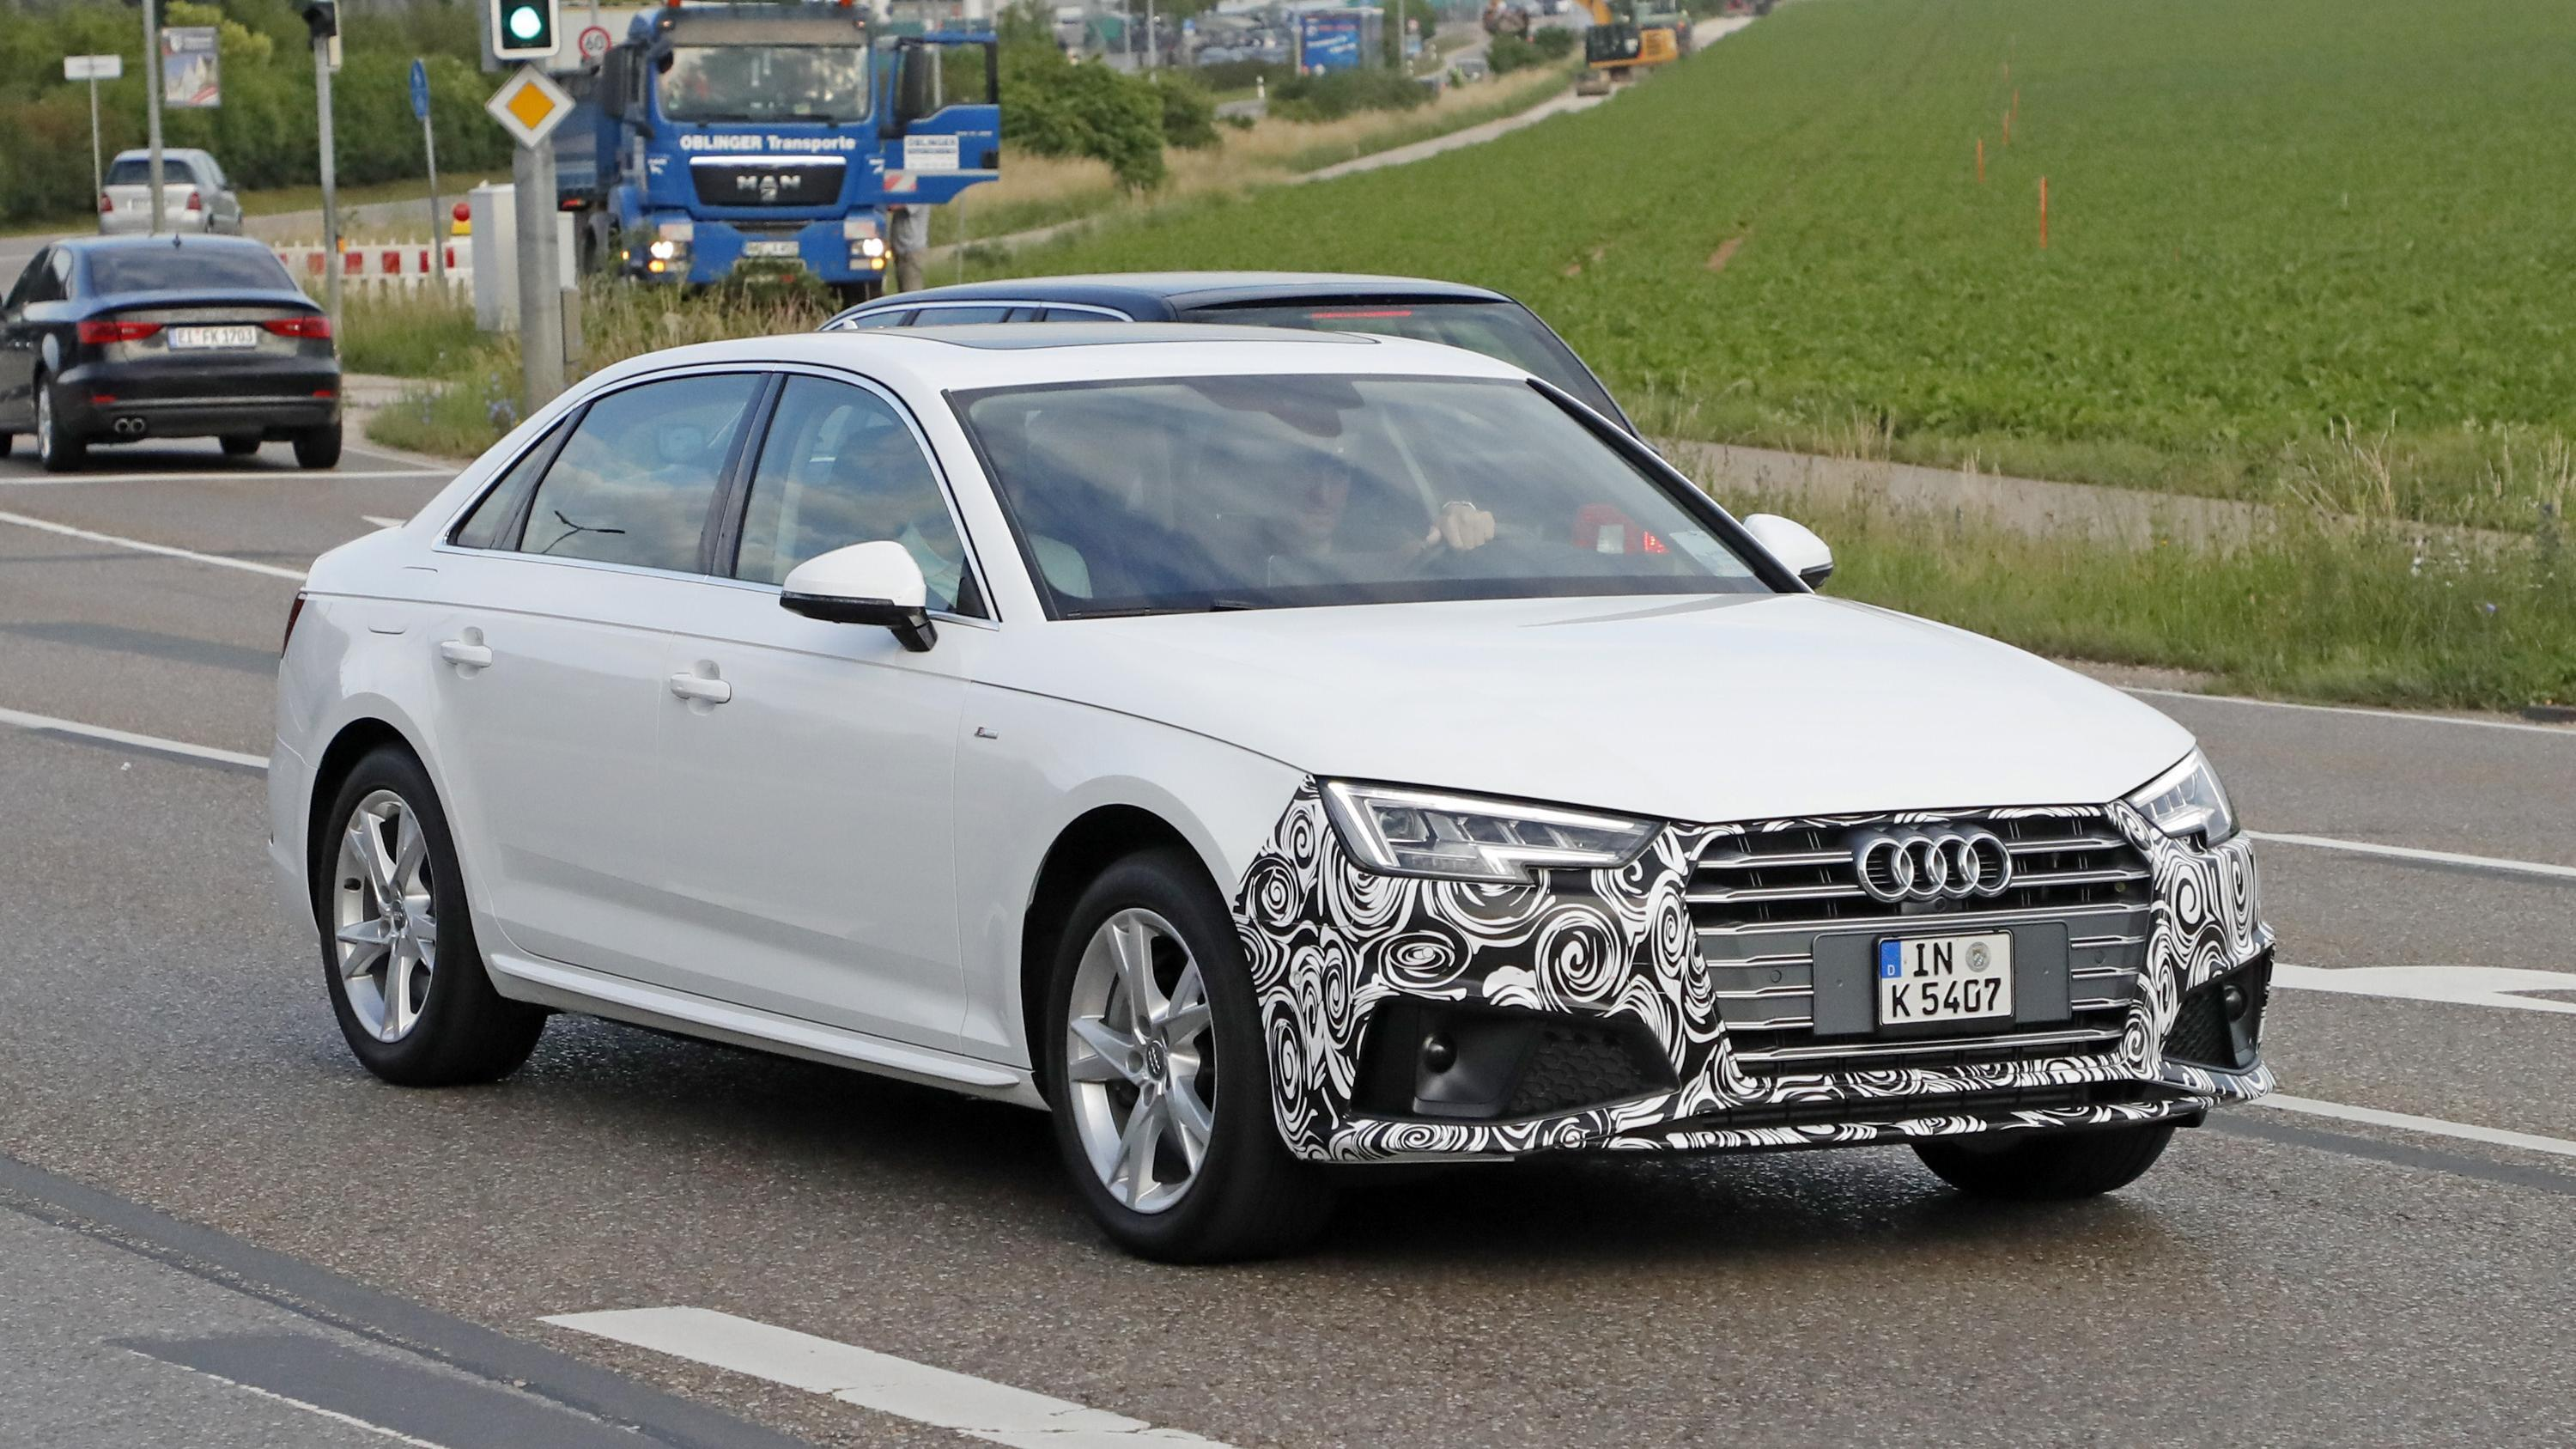 2019 Audi A4 Pictures, Photos, Wallpapers.